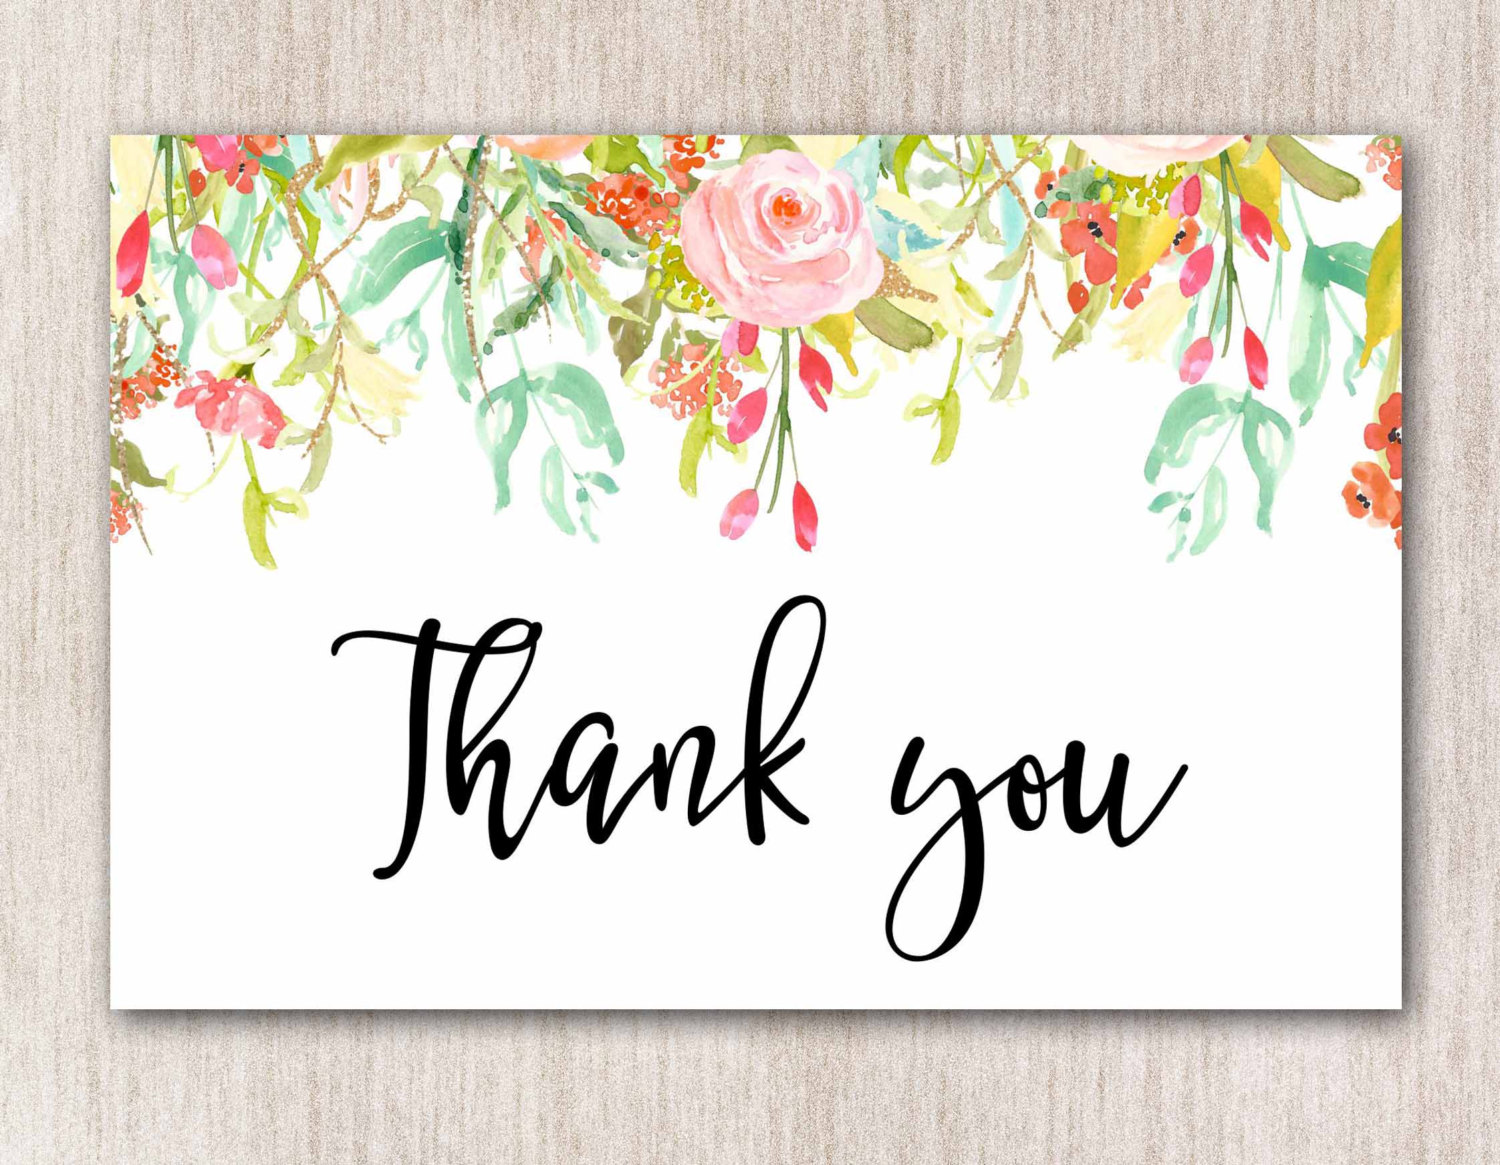 10 Blank Thank You Cards  Design Trends  Premium PSD Vector Downloads